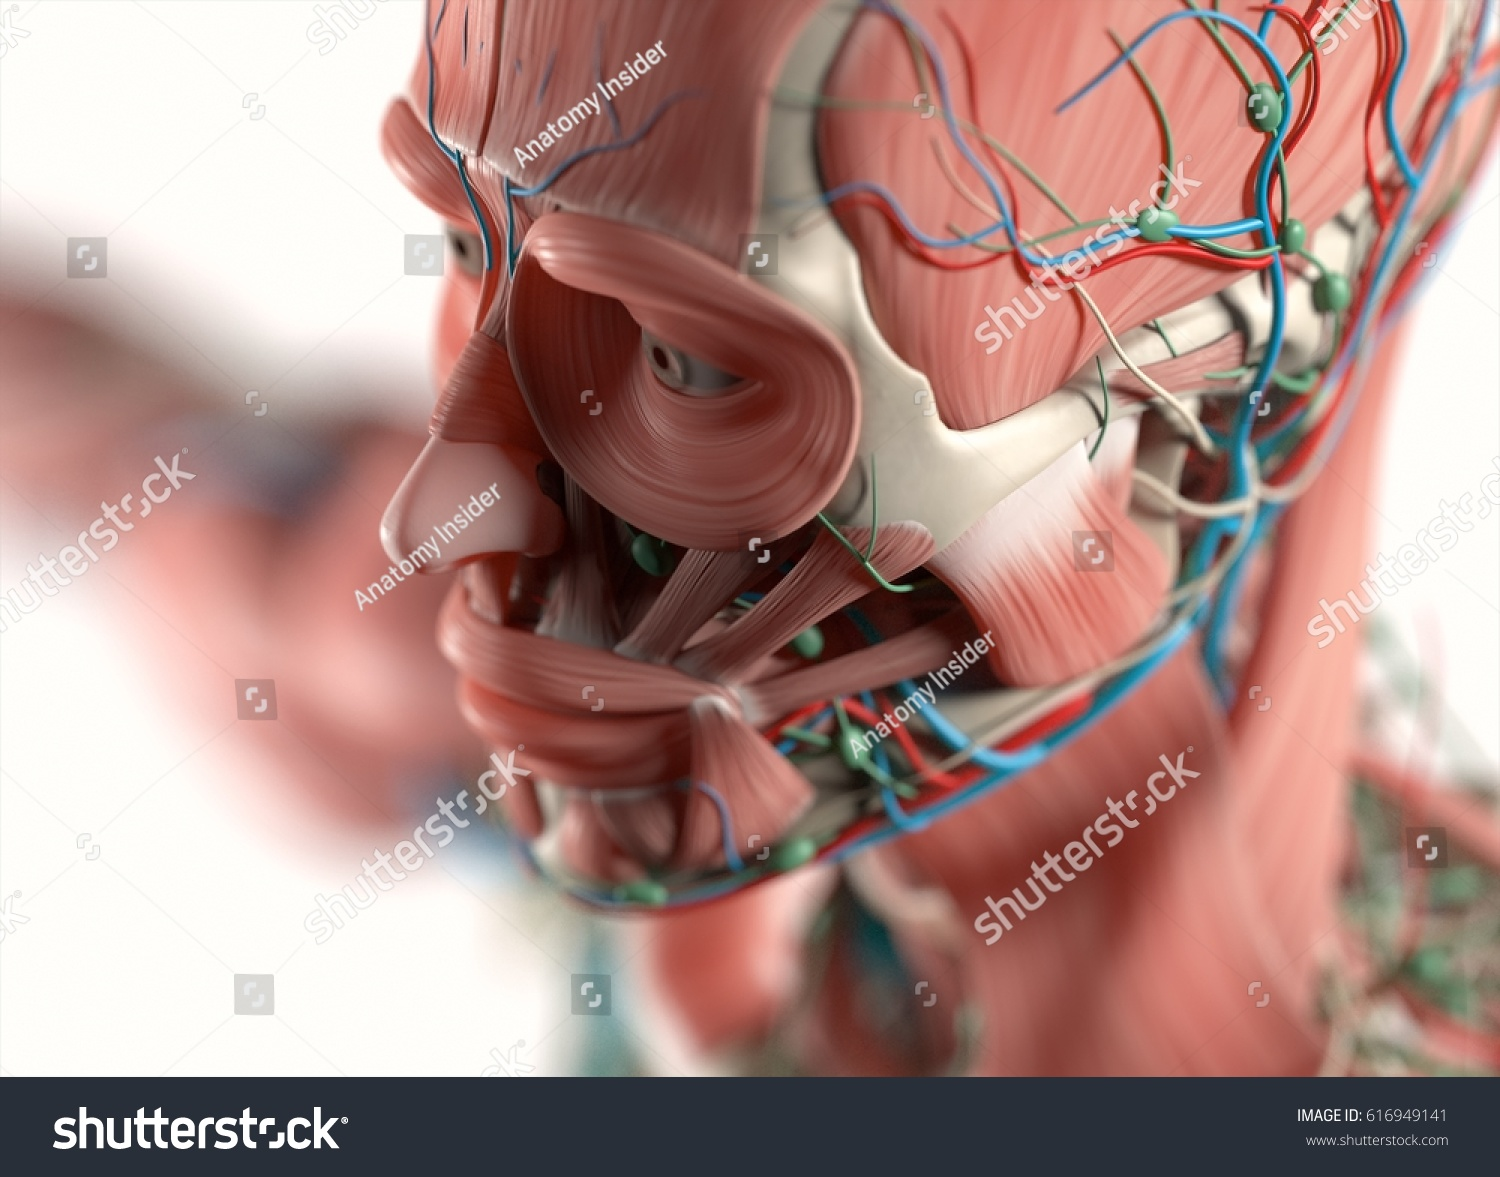 Human Anatomy Face Jawcheek Nose Muscular Stock Illustration ...